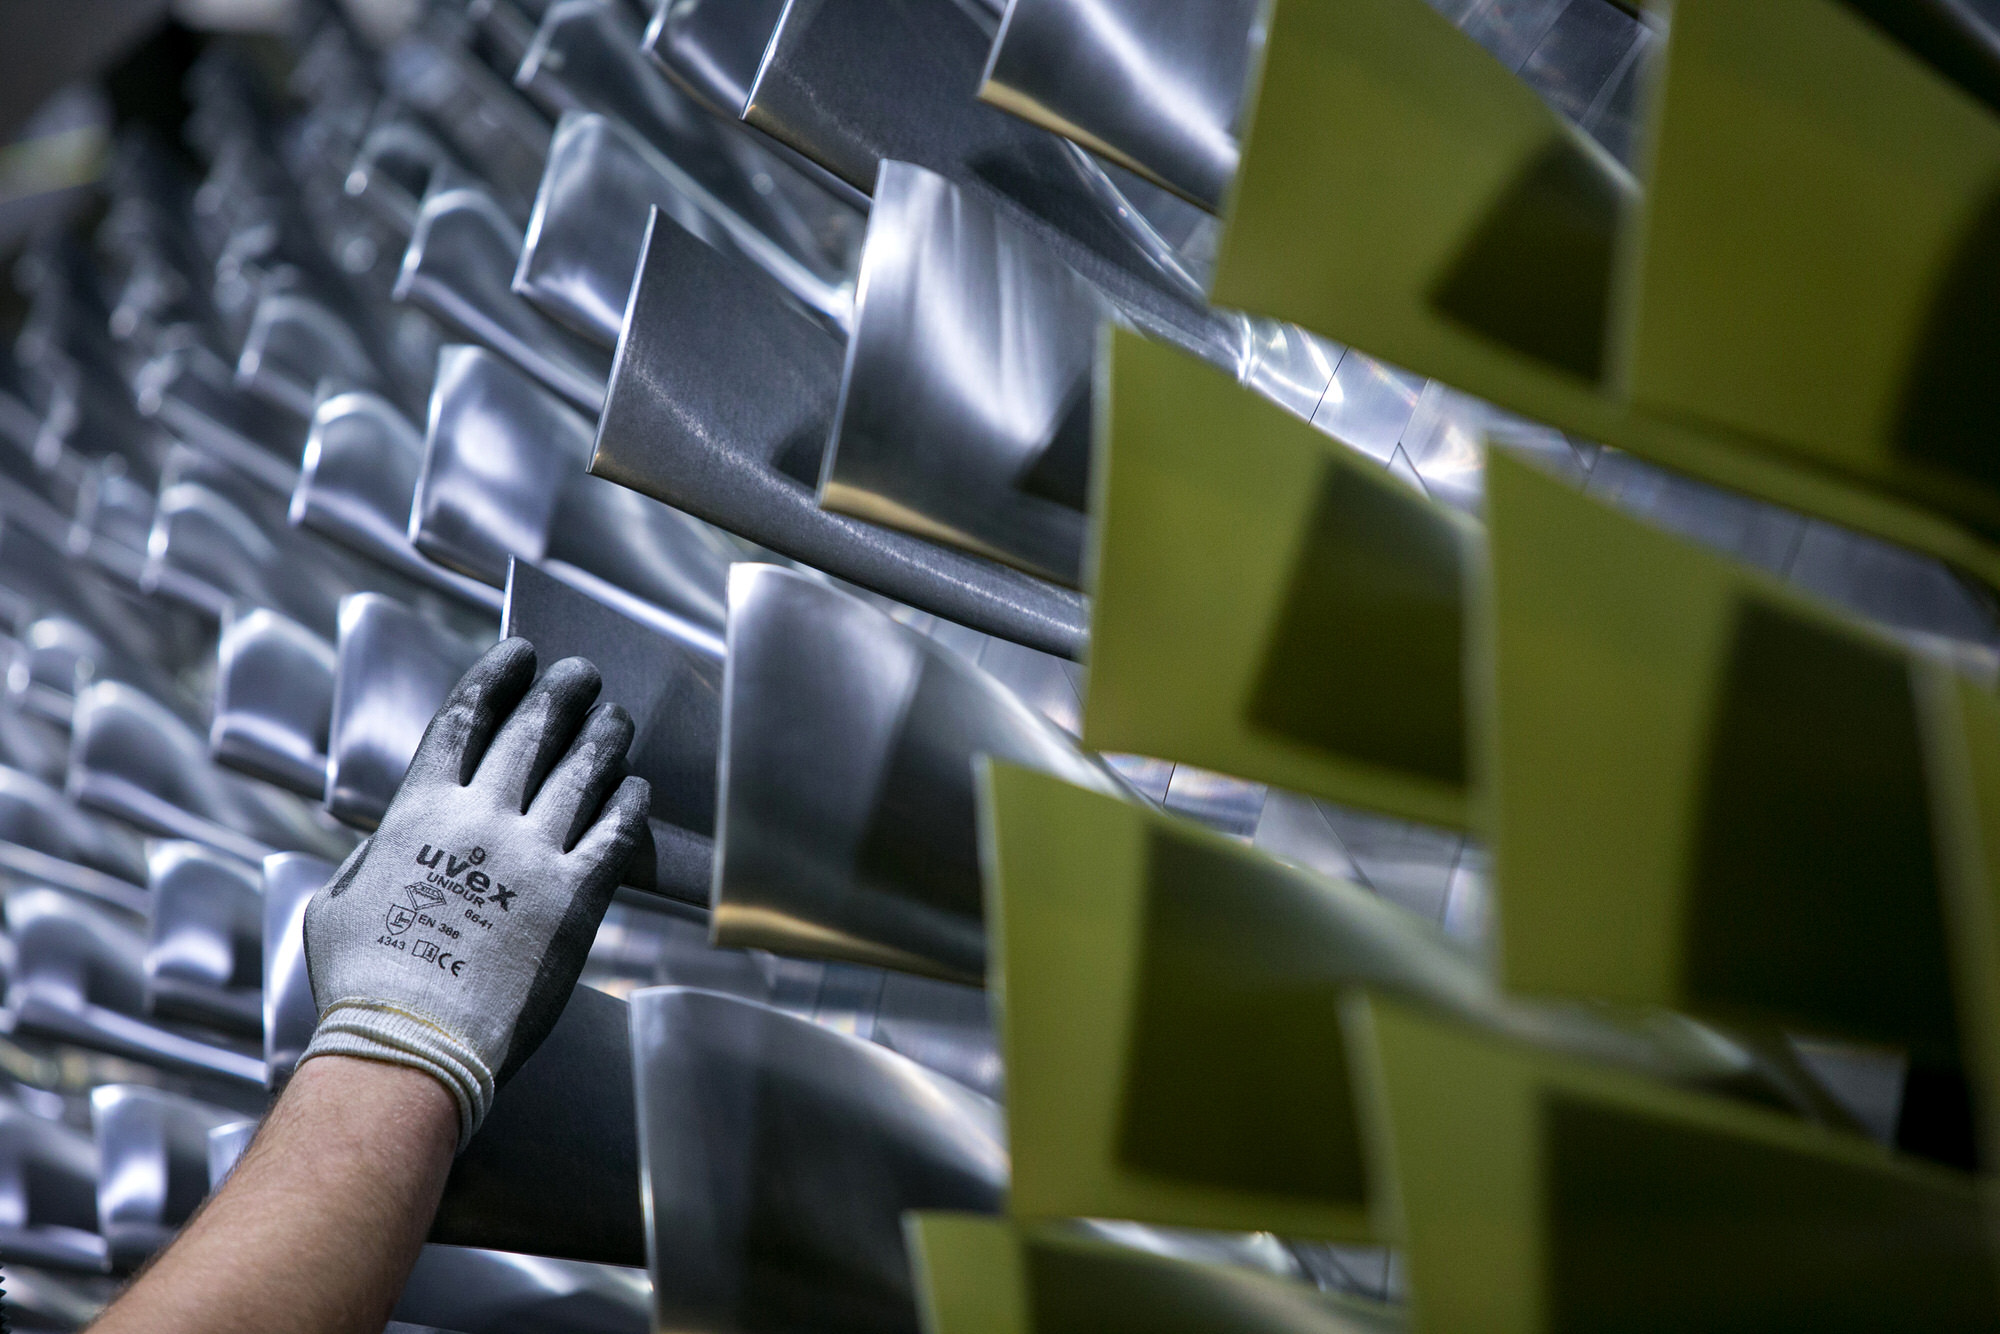 An employee inspects the blades on a H-class turbine on the assembly line of Siemens AG's gas turbine factory in Berlin, Germany, on Tuesday, Feb. 2, 2016. Siemens, Europe's largest engineering company, criticized the U.K. government for creating uncertainty in the energy industry, saying it hampers investment in gas plants, wind farms and factories. Photographer: Krisztian Bocsi/Bloomberg